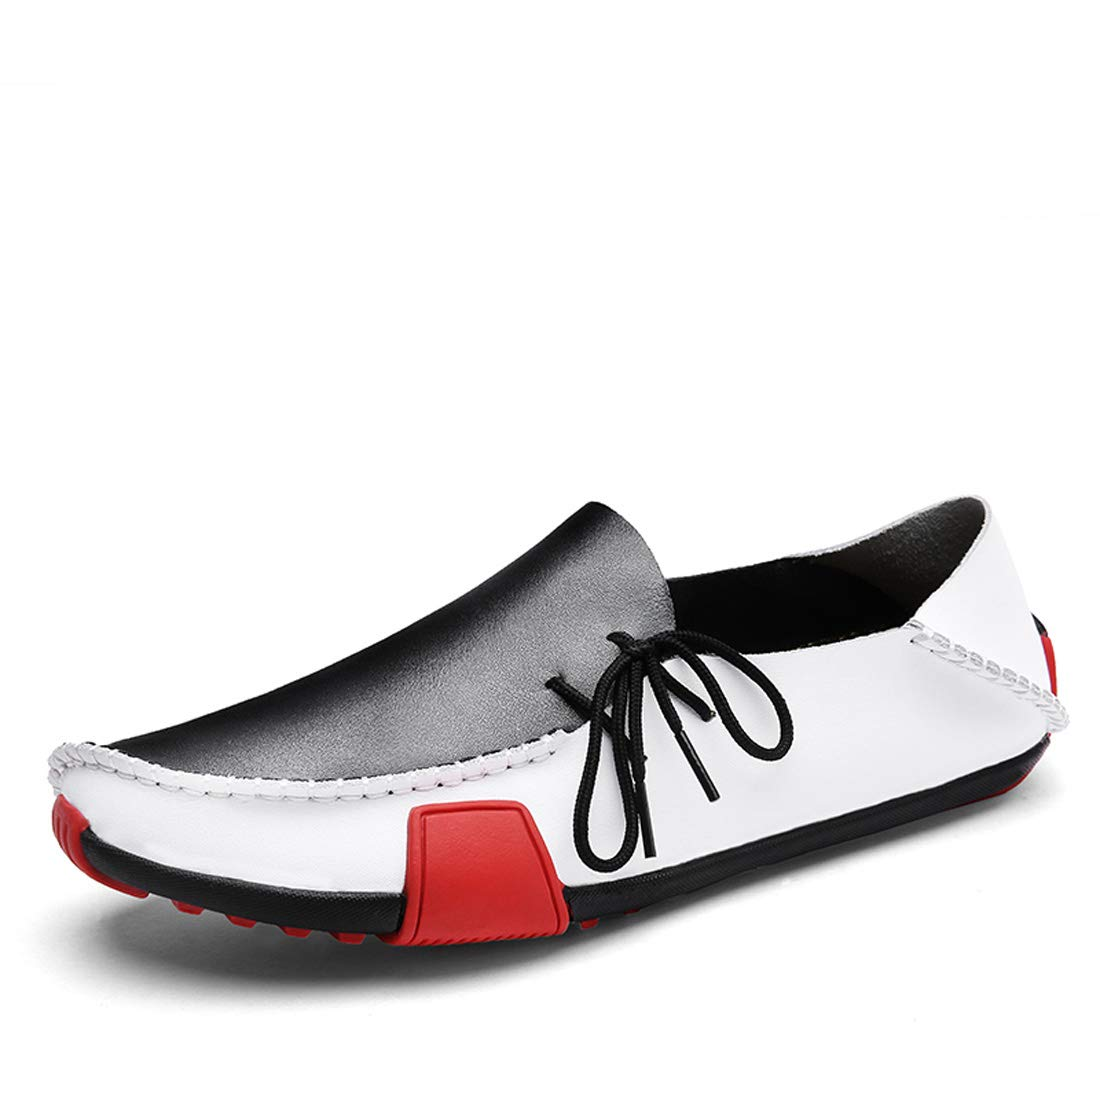 e2adec1069 Ceyue Mens Leather Loafers Shoes Handmade Soft Breathable Casual Shoes  Walking Shoes Black 6.5: Buy Online at Low Prices in India - Amazon.in